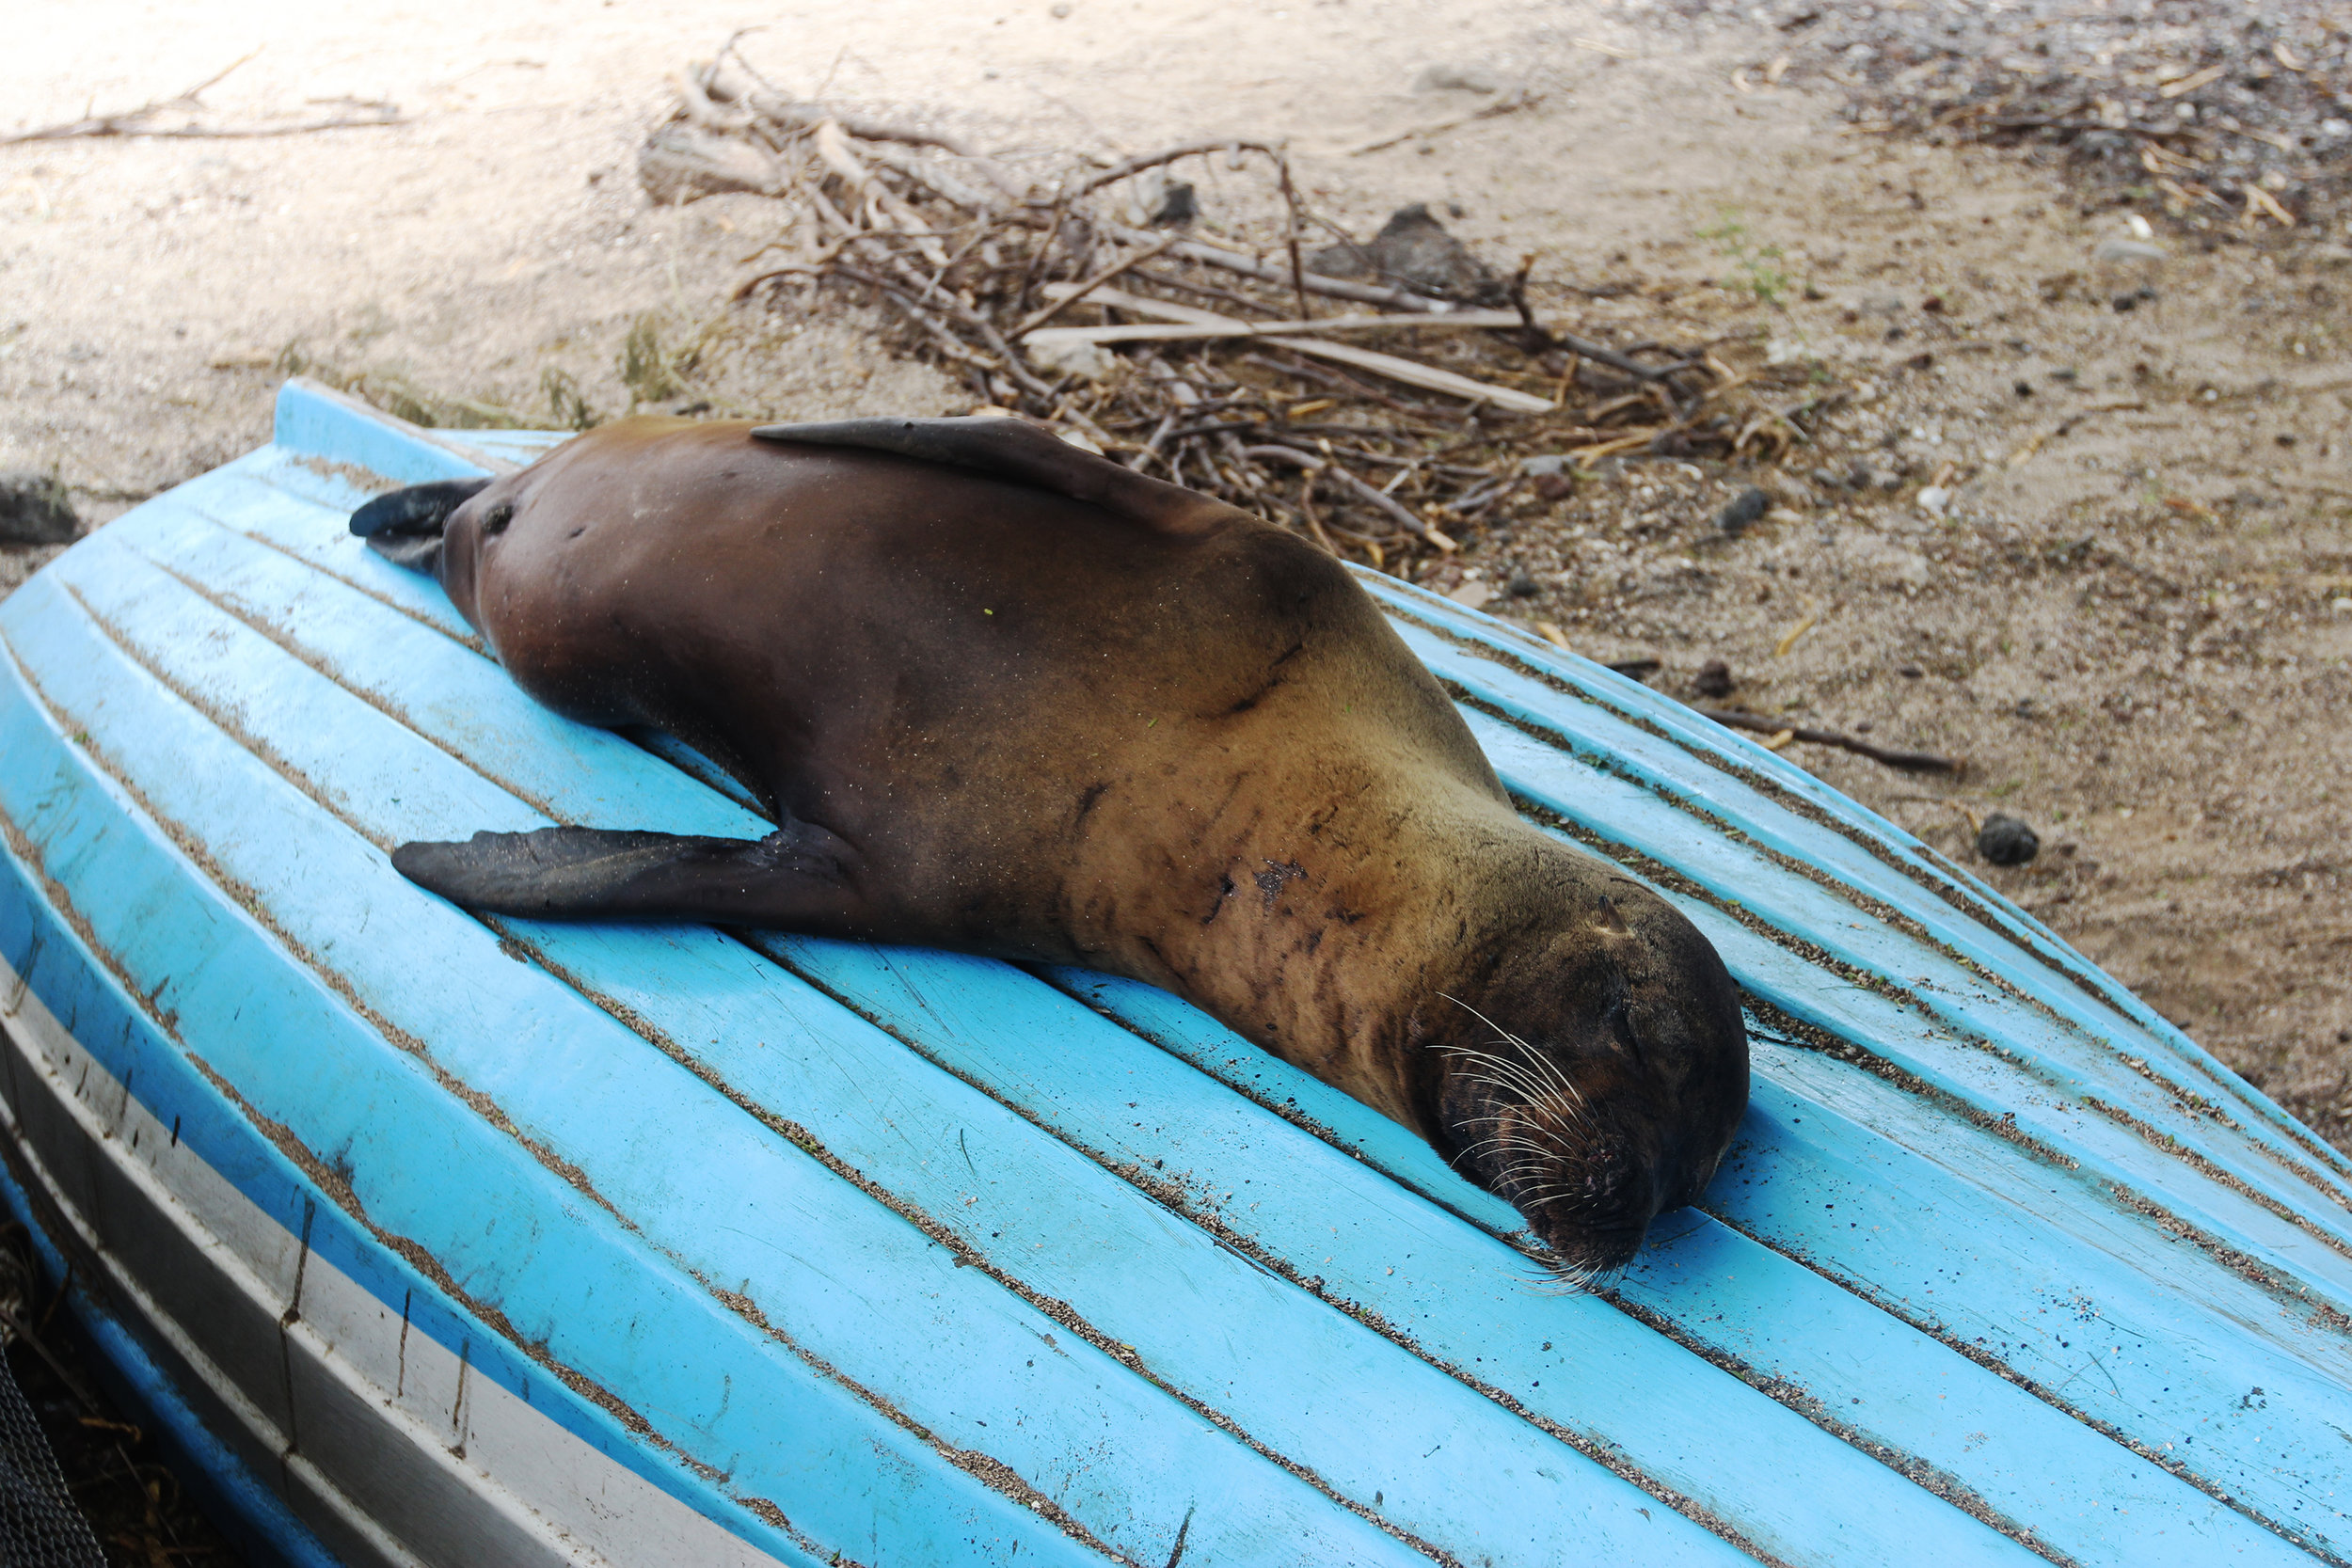 A Galápagos sea lion naps on an overturned boat in Puerto Baquerizo Moreno on the island of San Cristóbal.